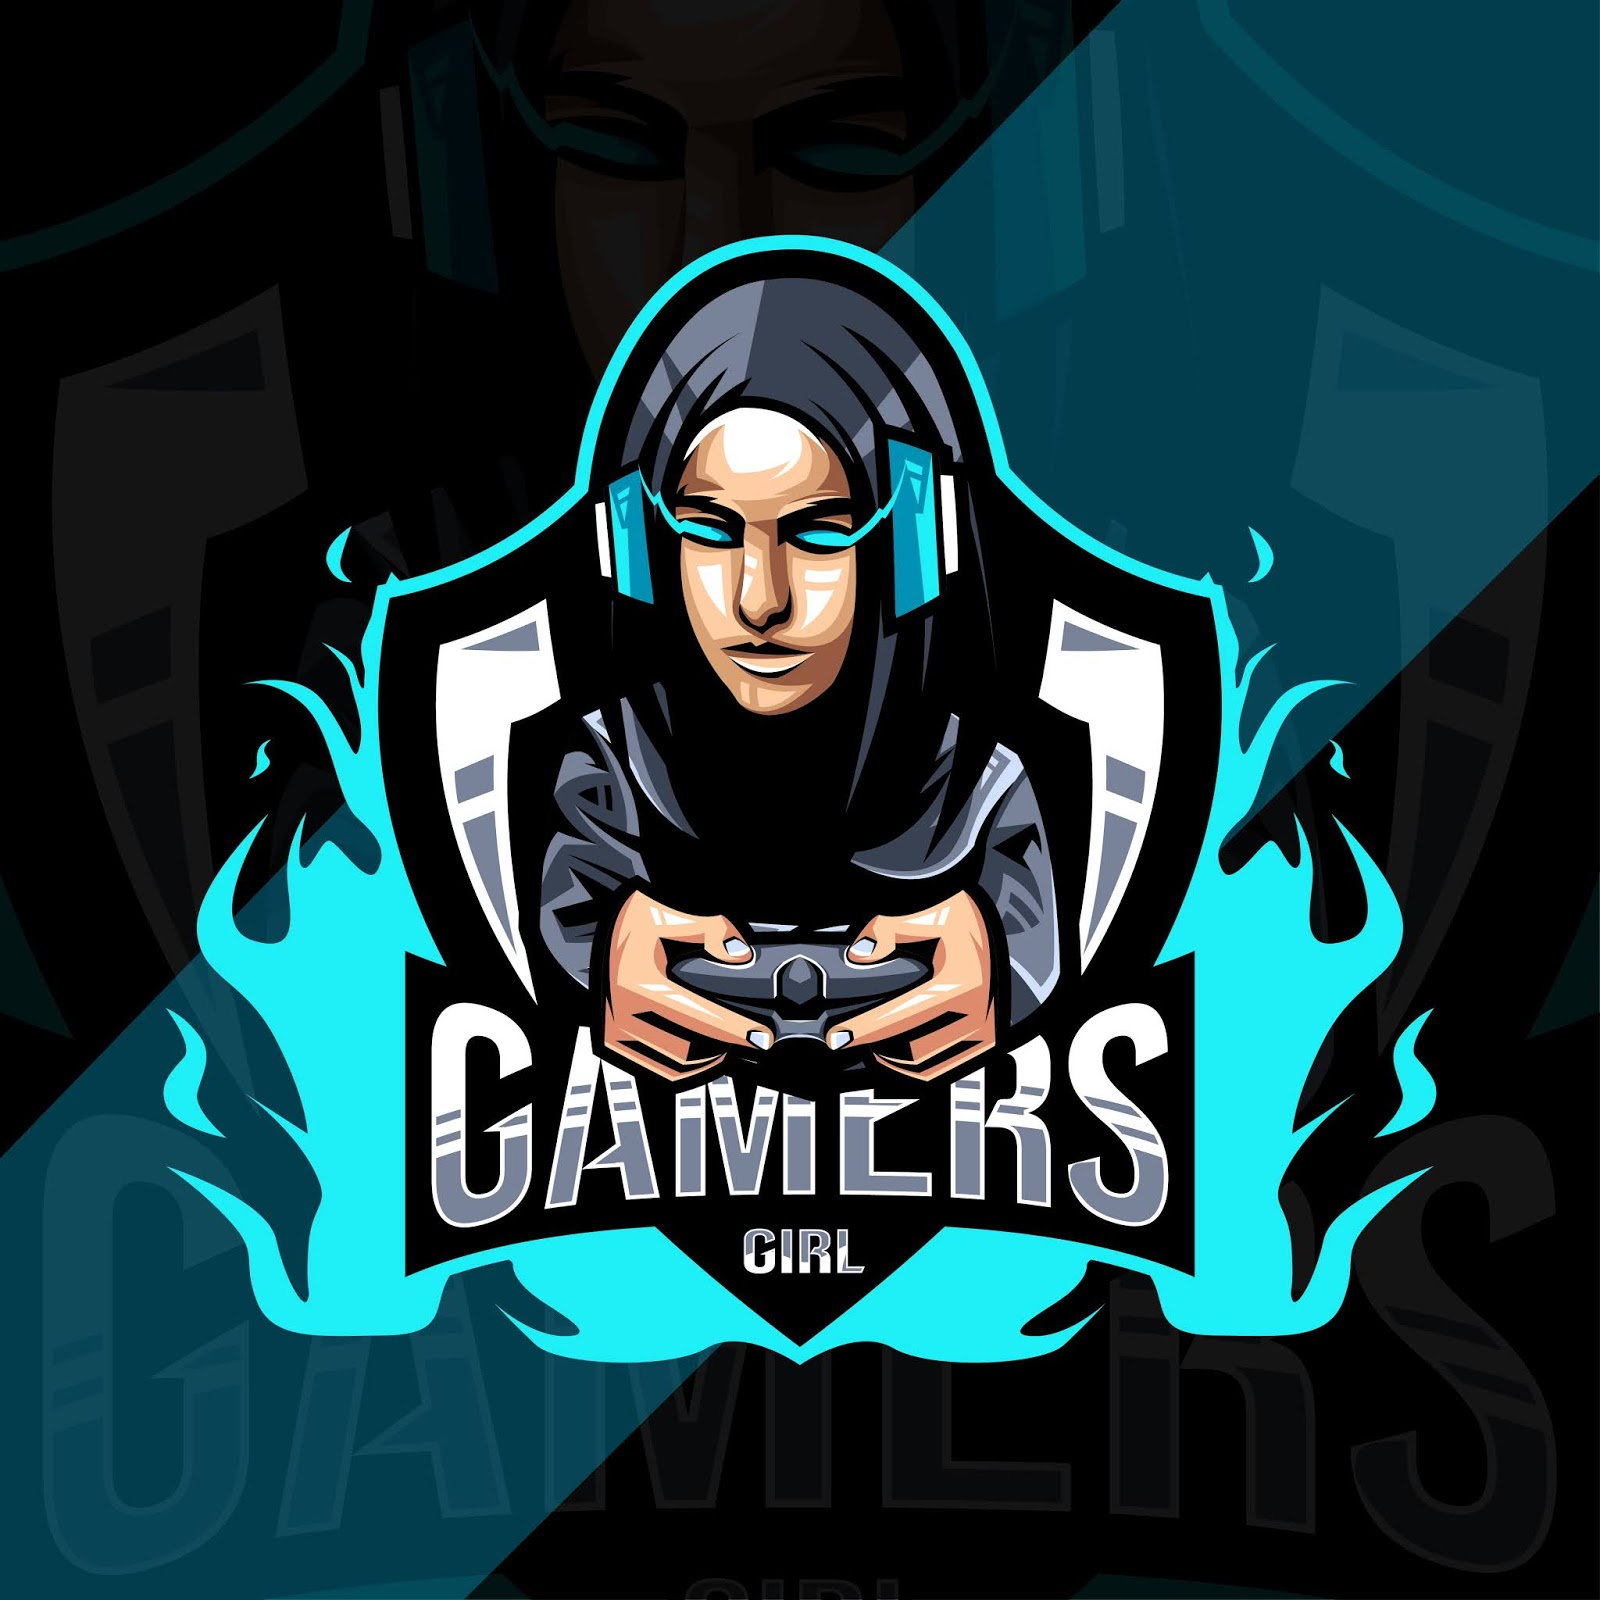 Gamers Girl Mascot Logo Design Free Download Vector CDR, AI, EPS and PNG Formats